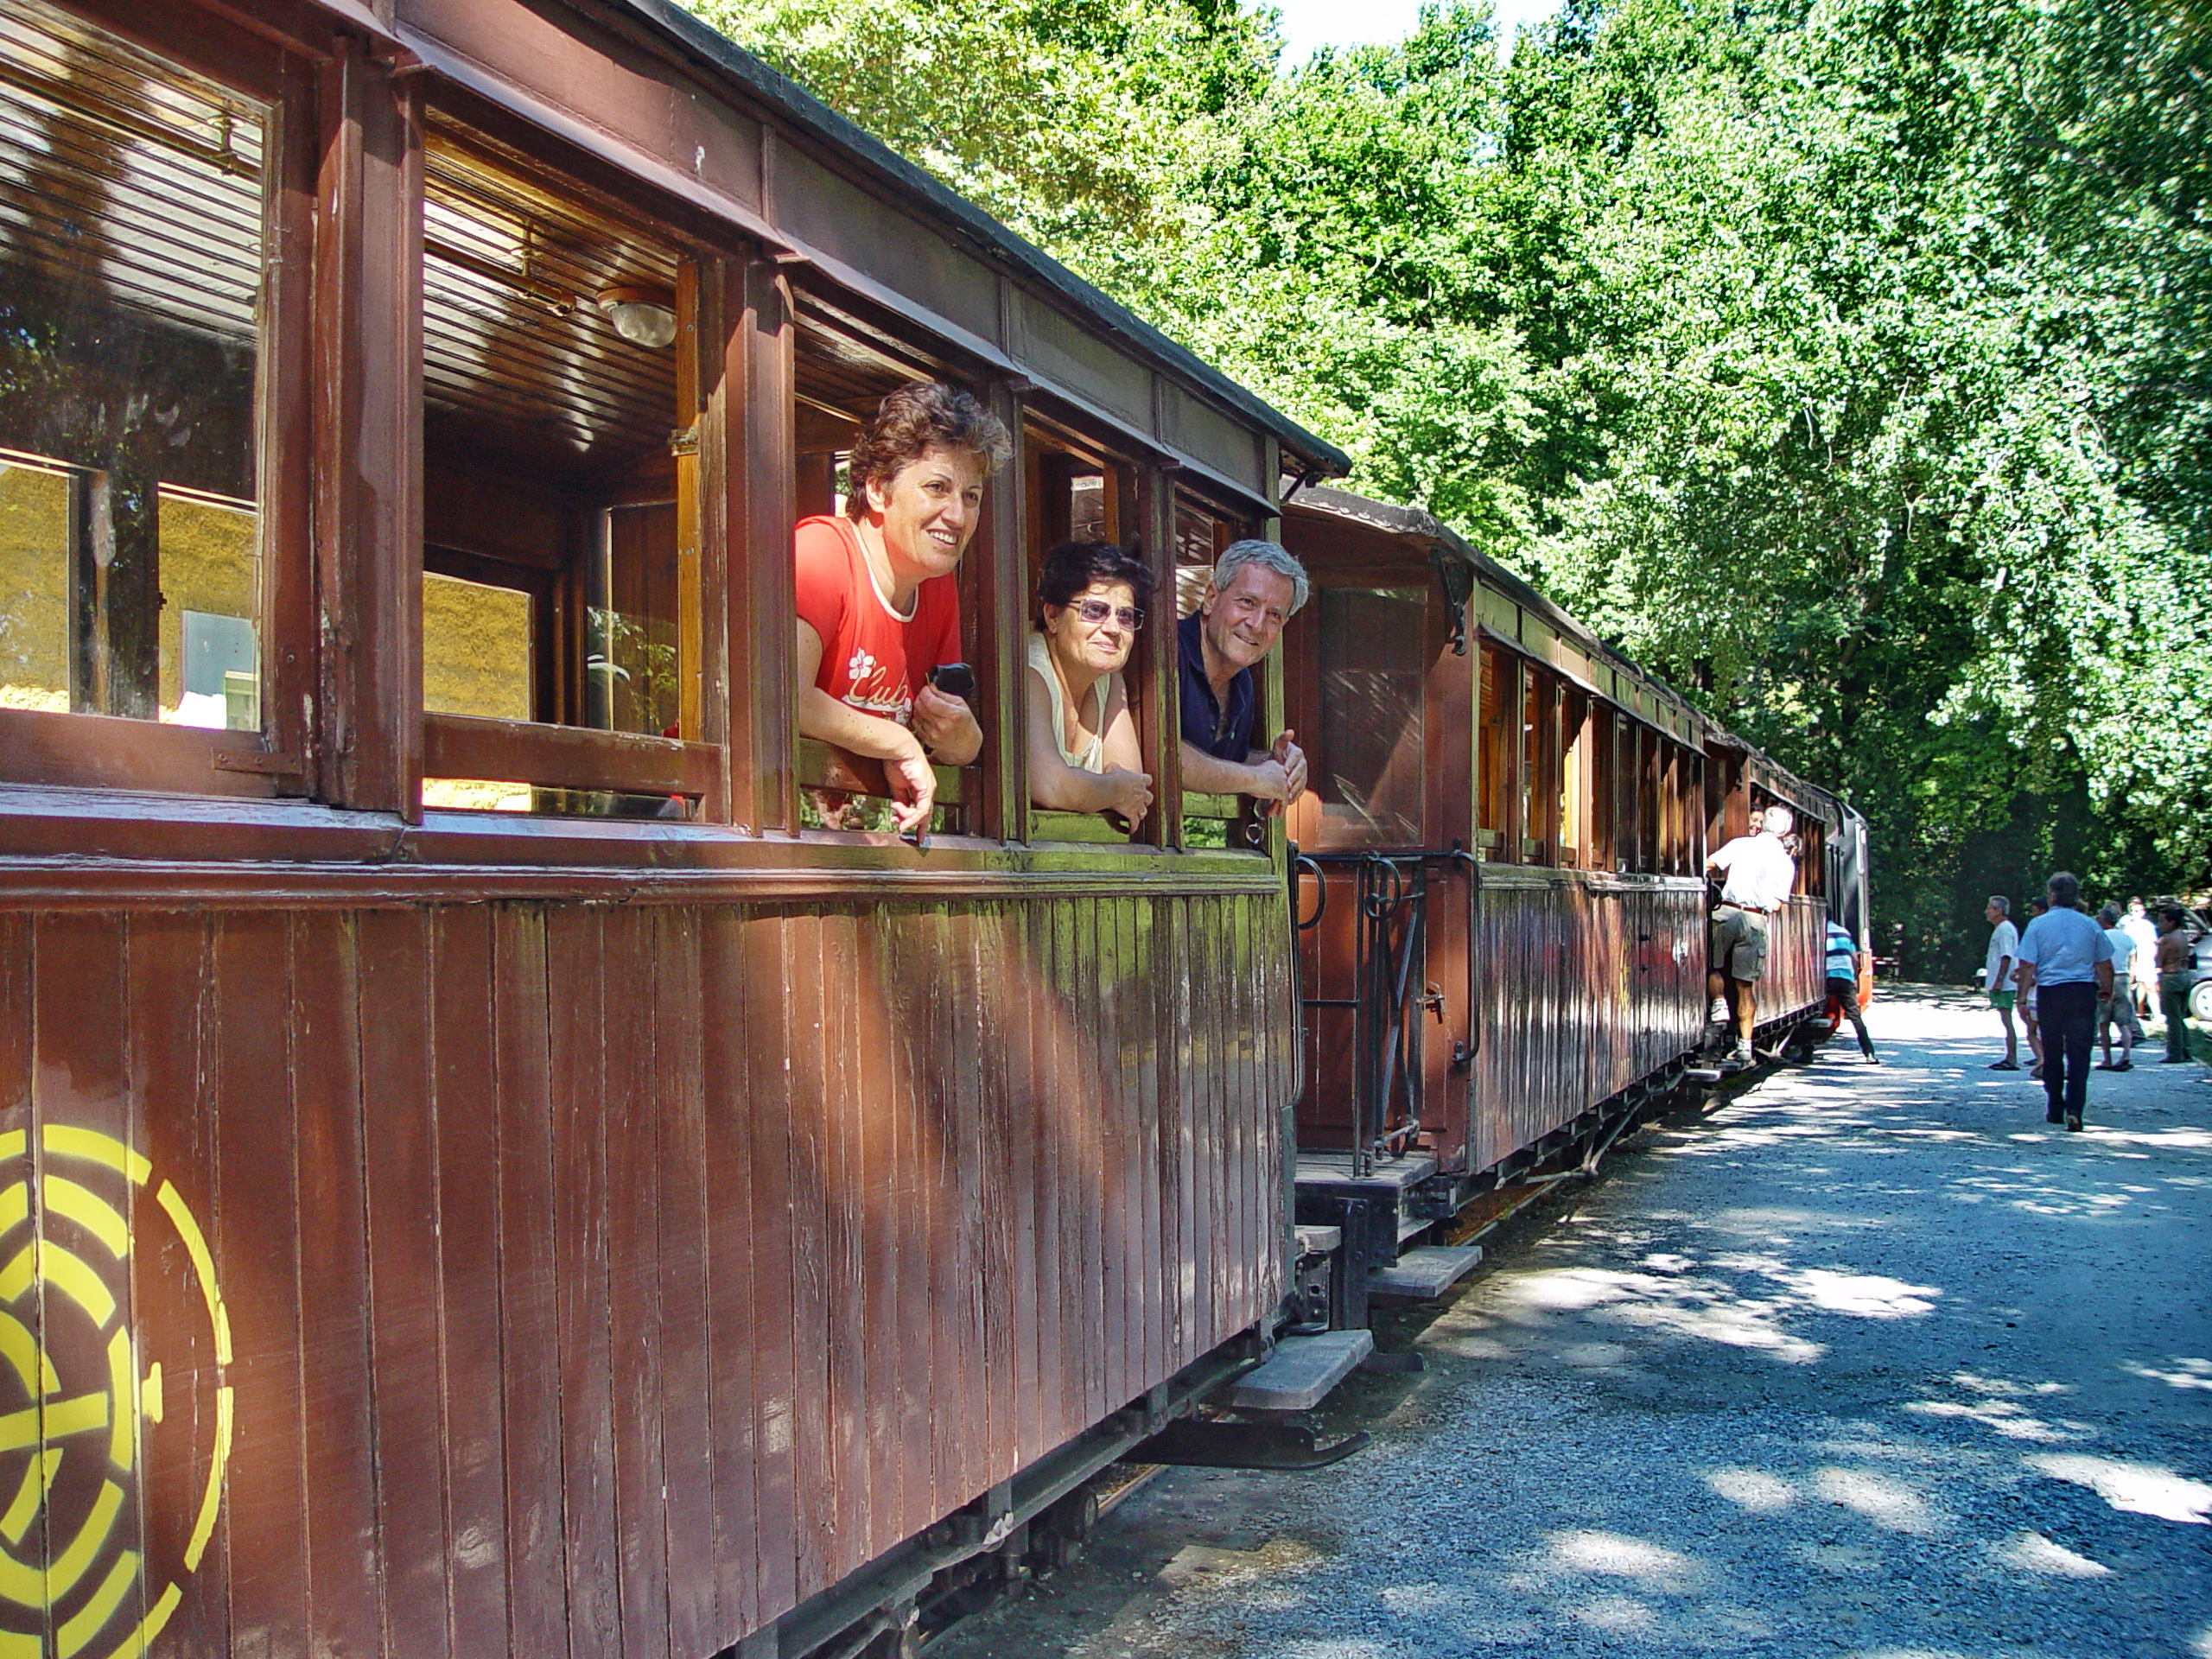 tokalivi.com-greece-pelio-milies-train-01